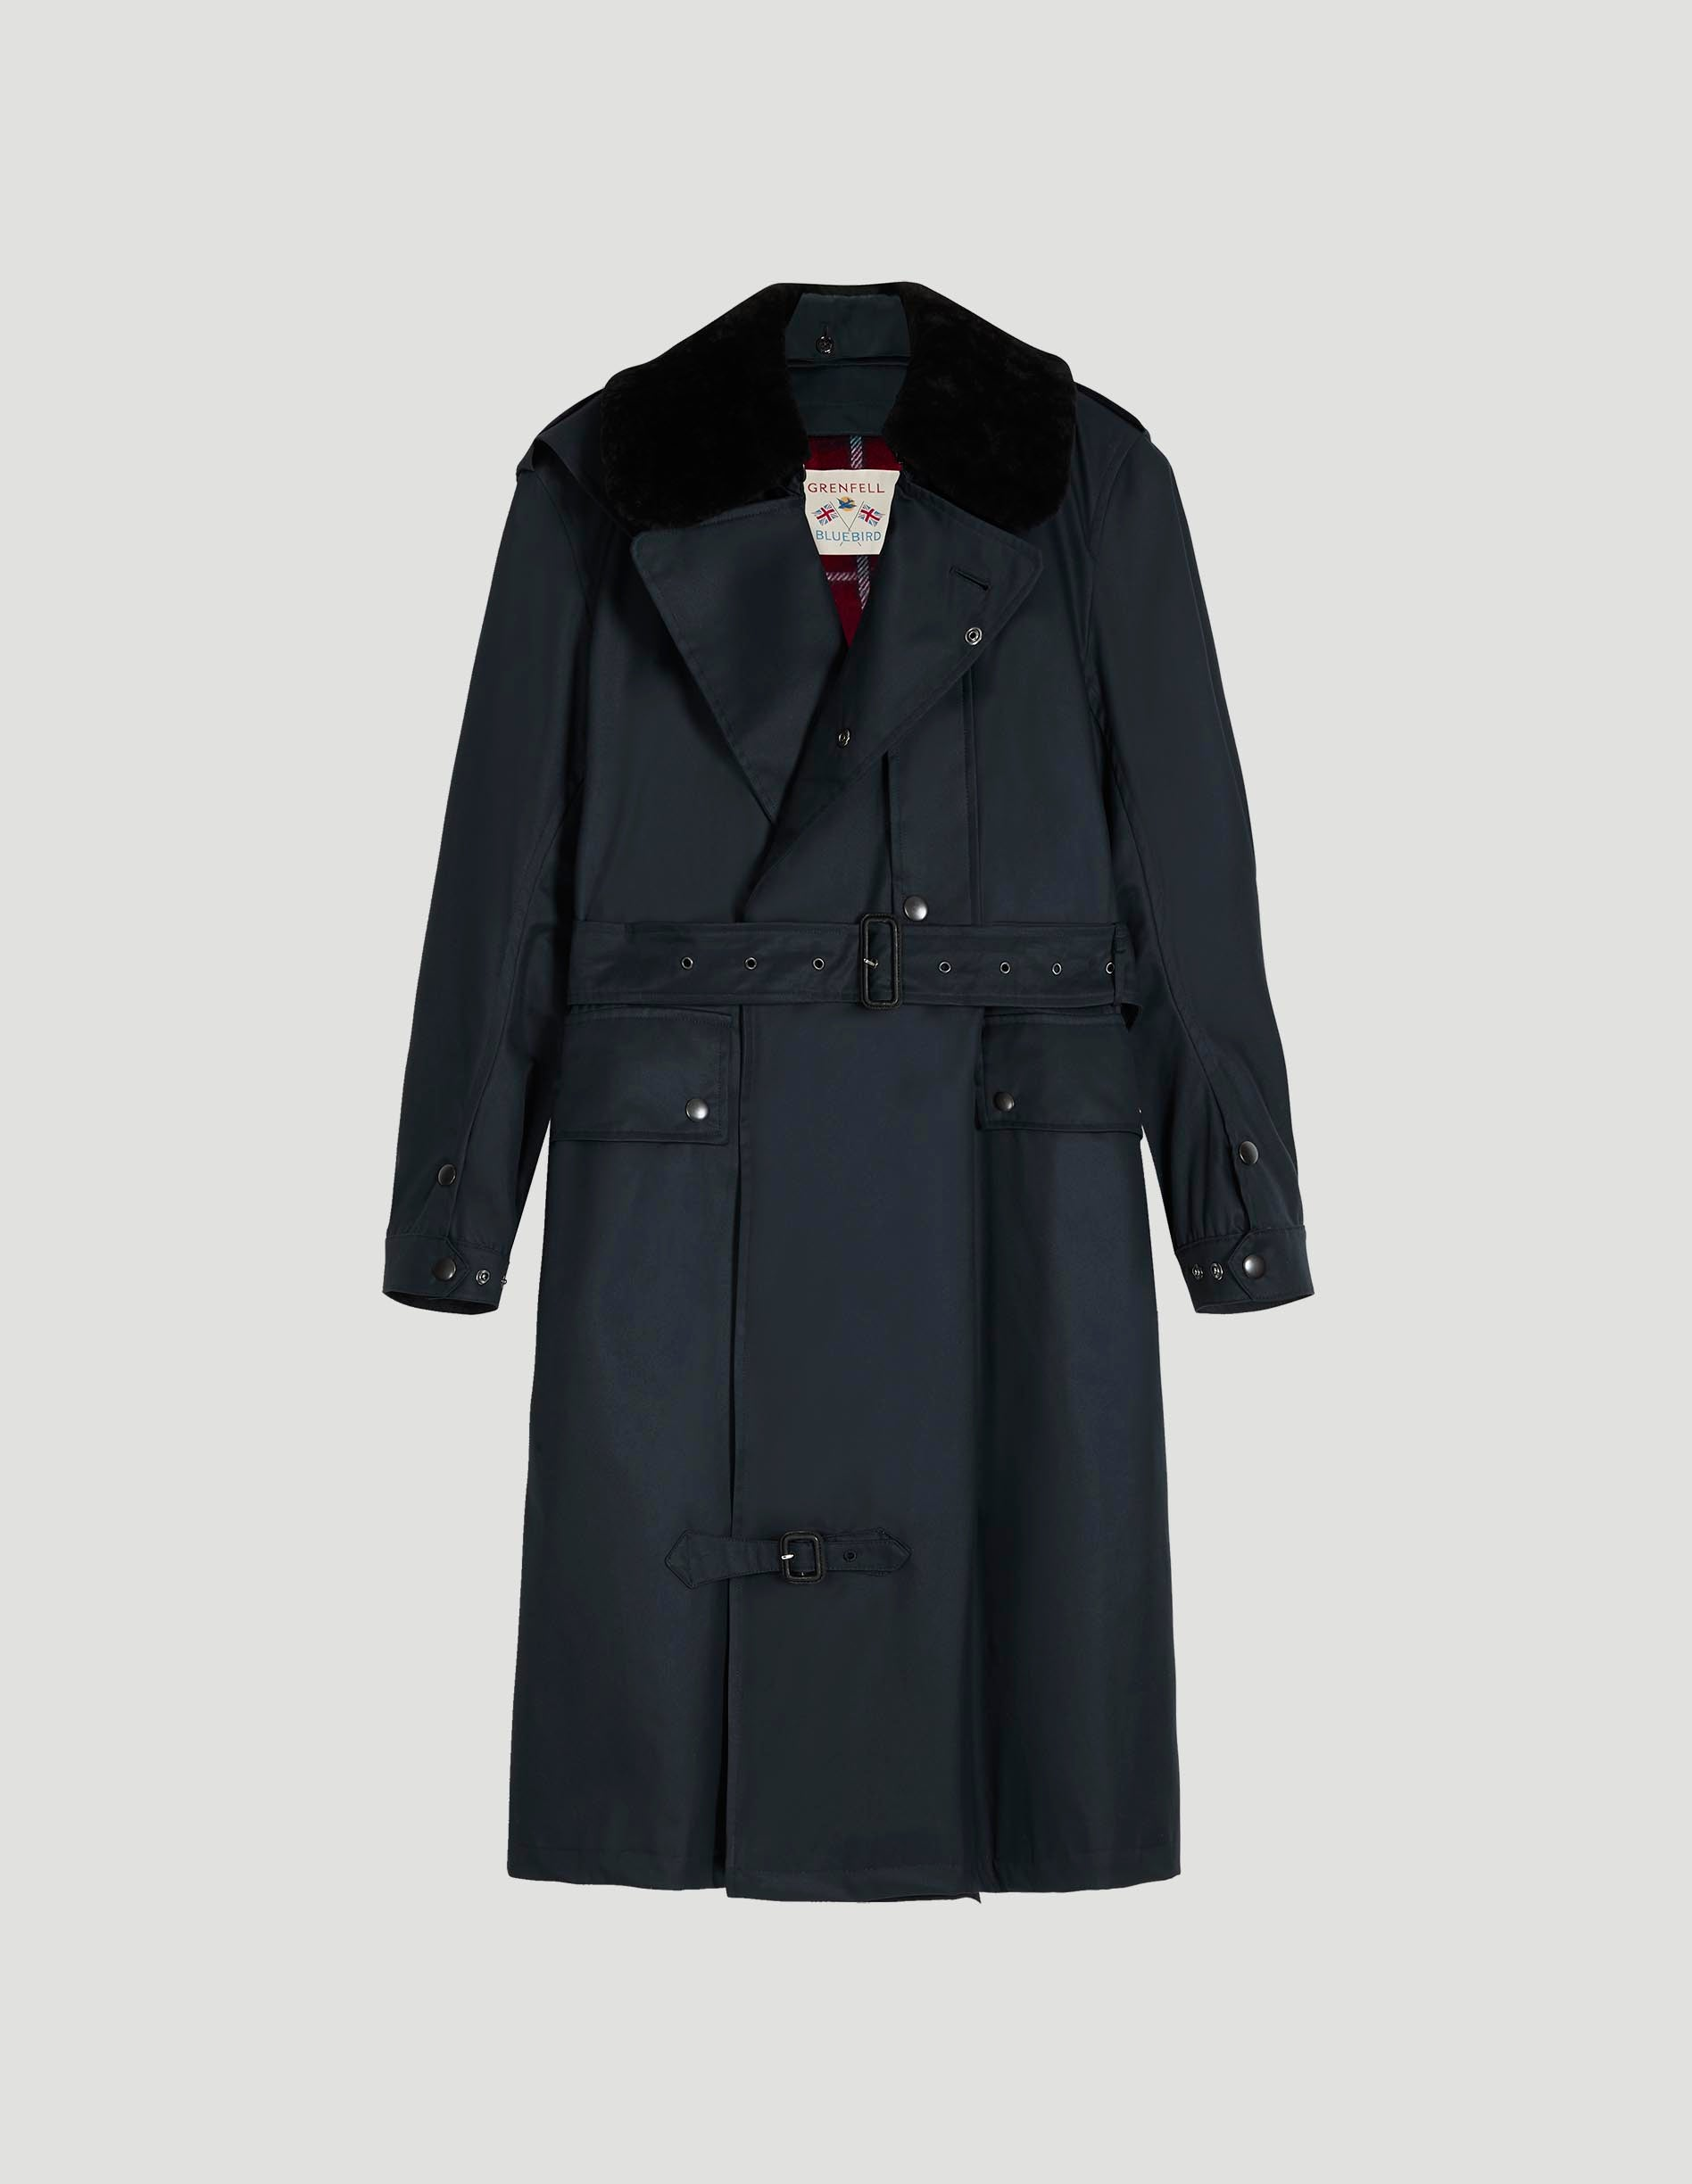 Despatch Riders Coat Grenfell Cloth Navy